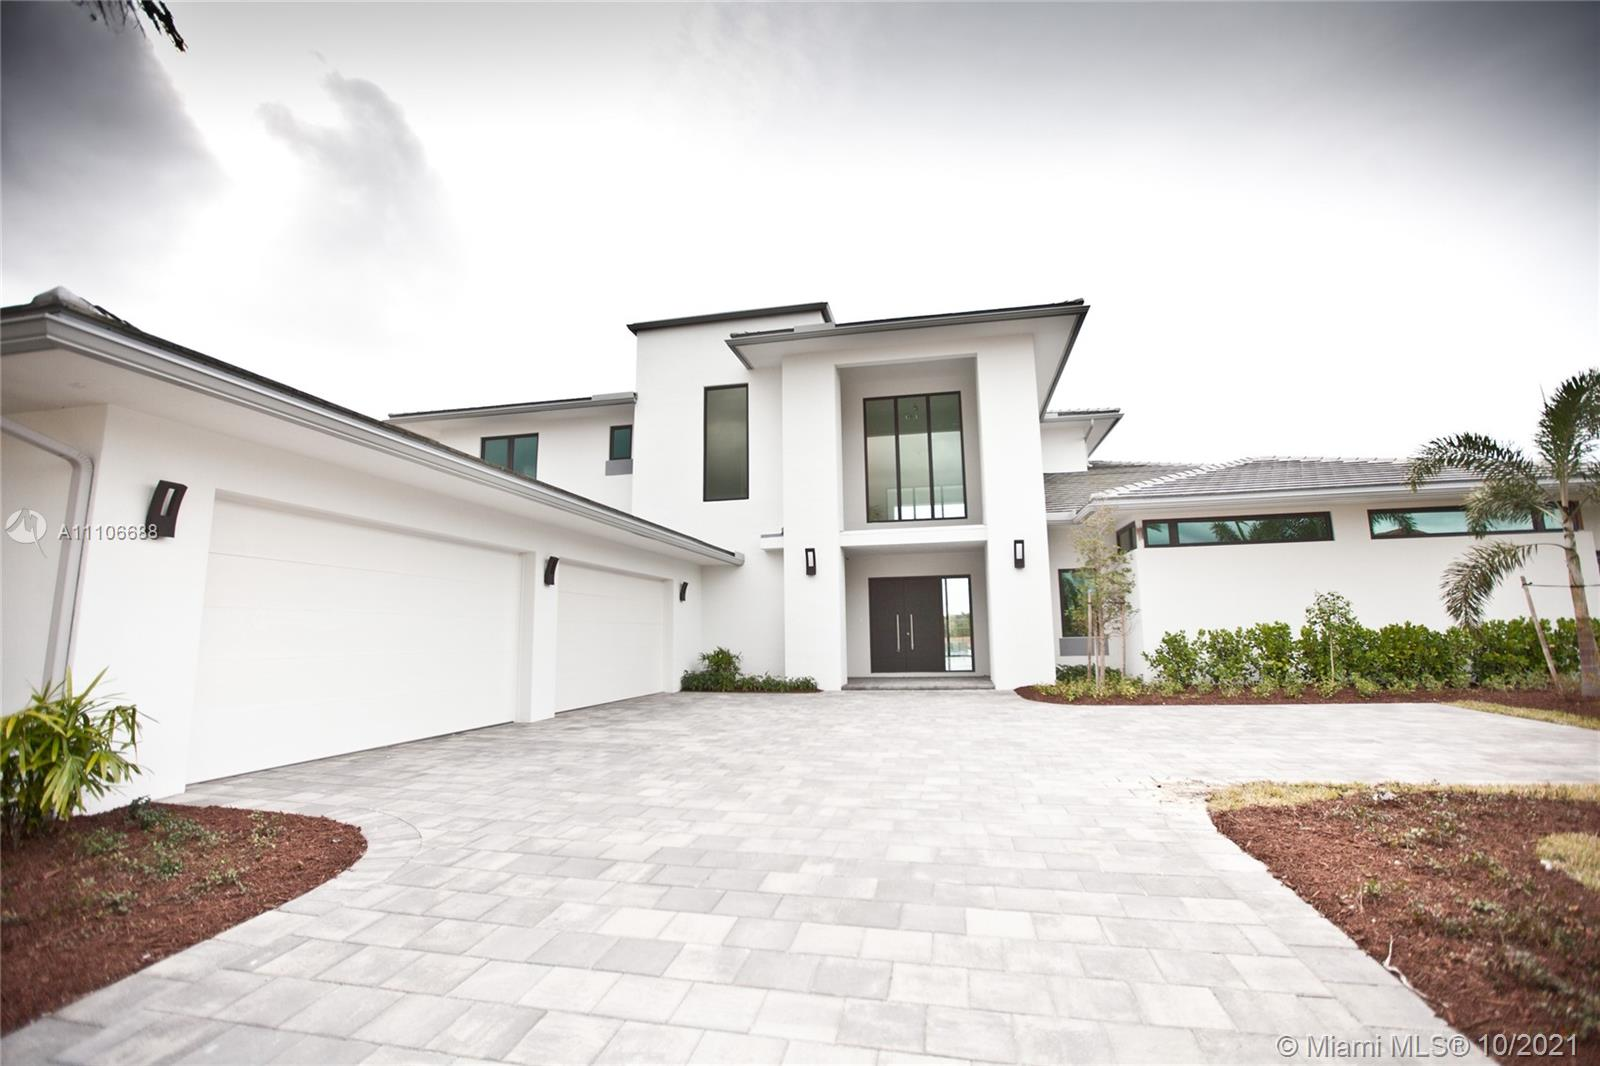 New custom home built in 2018, this beautiful home was built with family in mind, located in one of Weston's most sought-after communities. This elegant two-story canal-front estate features a beautiful open-plan kitchen with granite countertops, an oversized island, two sinks, fully stocked with top-of-the-line appliances, and a full butler's pantry. Master suite with private his and hers baths, walk-in closet and custom walk-in closets. Tile floors throughout. Large covered lanai, overlooking the pool and canal. Located on a 0.6467 acre lot, 4 car garage, 2 guest parking, hurricane impact glass, 7 bedrooms, 8 1/2 baths. All rooms include a private bathroom. 1 office and incredible infinity pool with heated SPA and incredible entertainment areas.